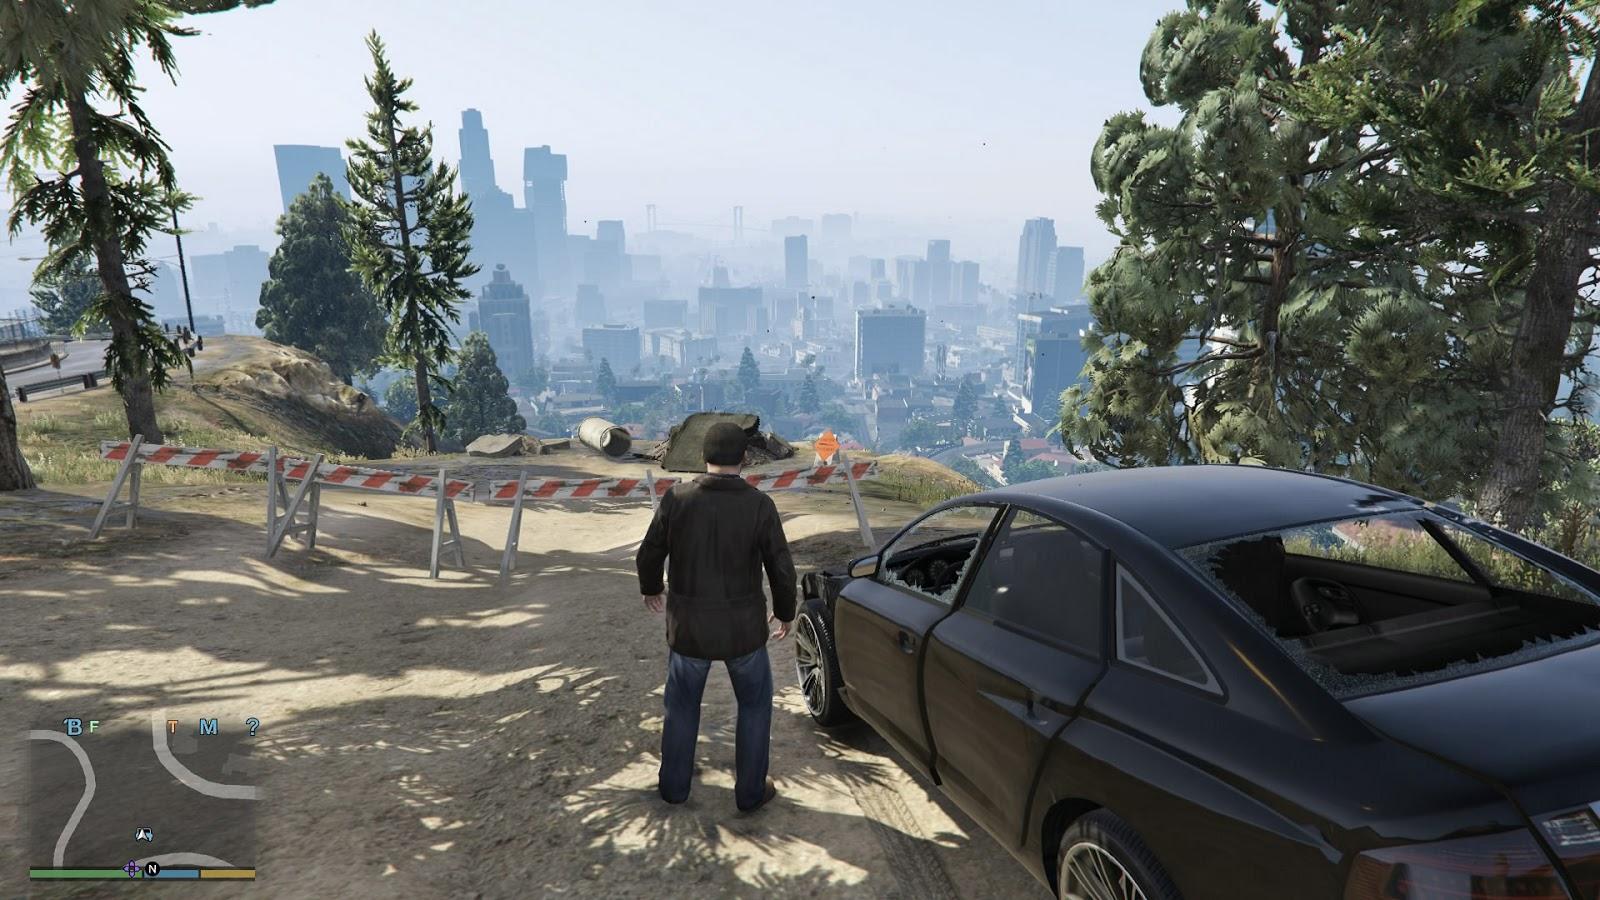 download iso ppsspp gta 5